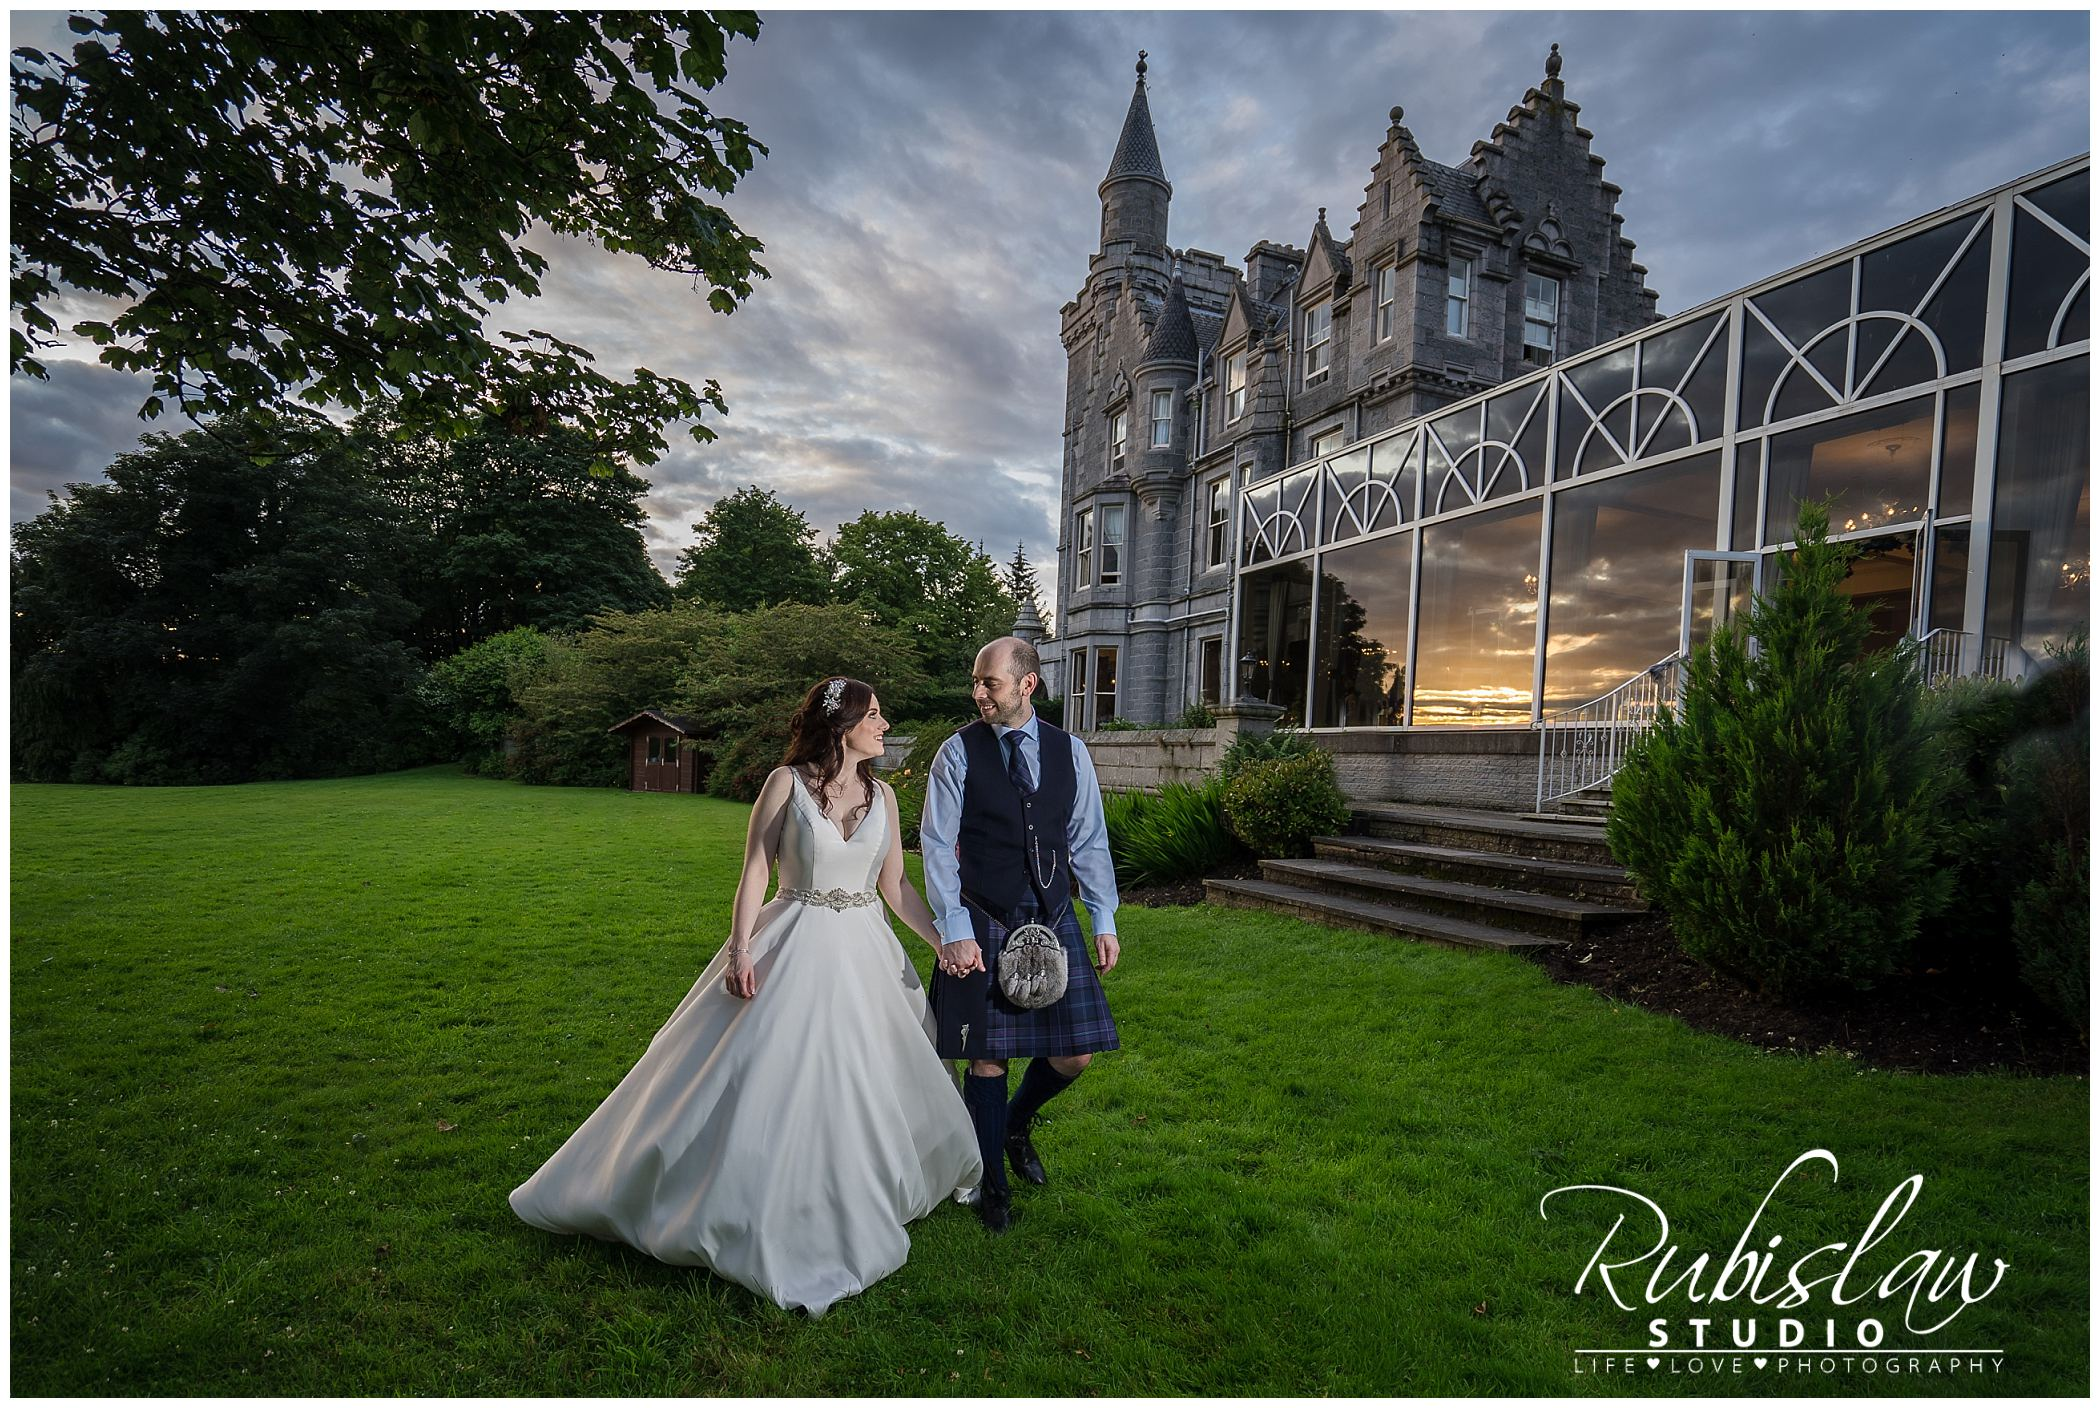 Lisa-Marie and Paul at Ardoe House